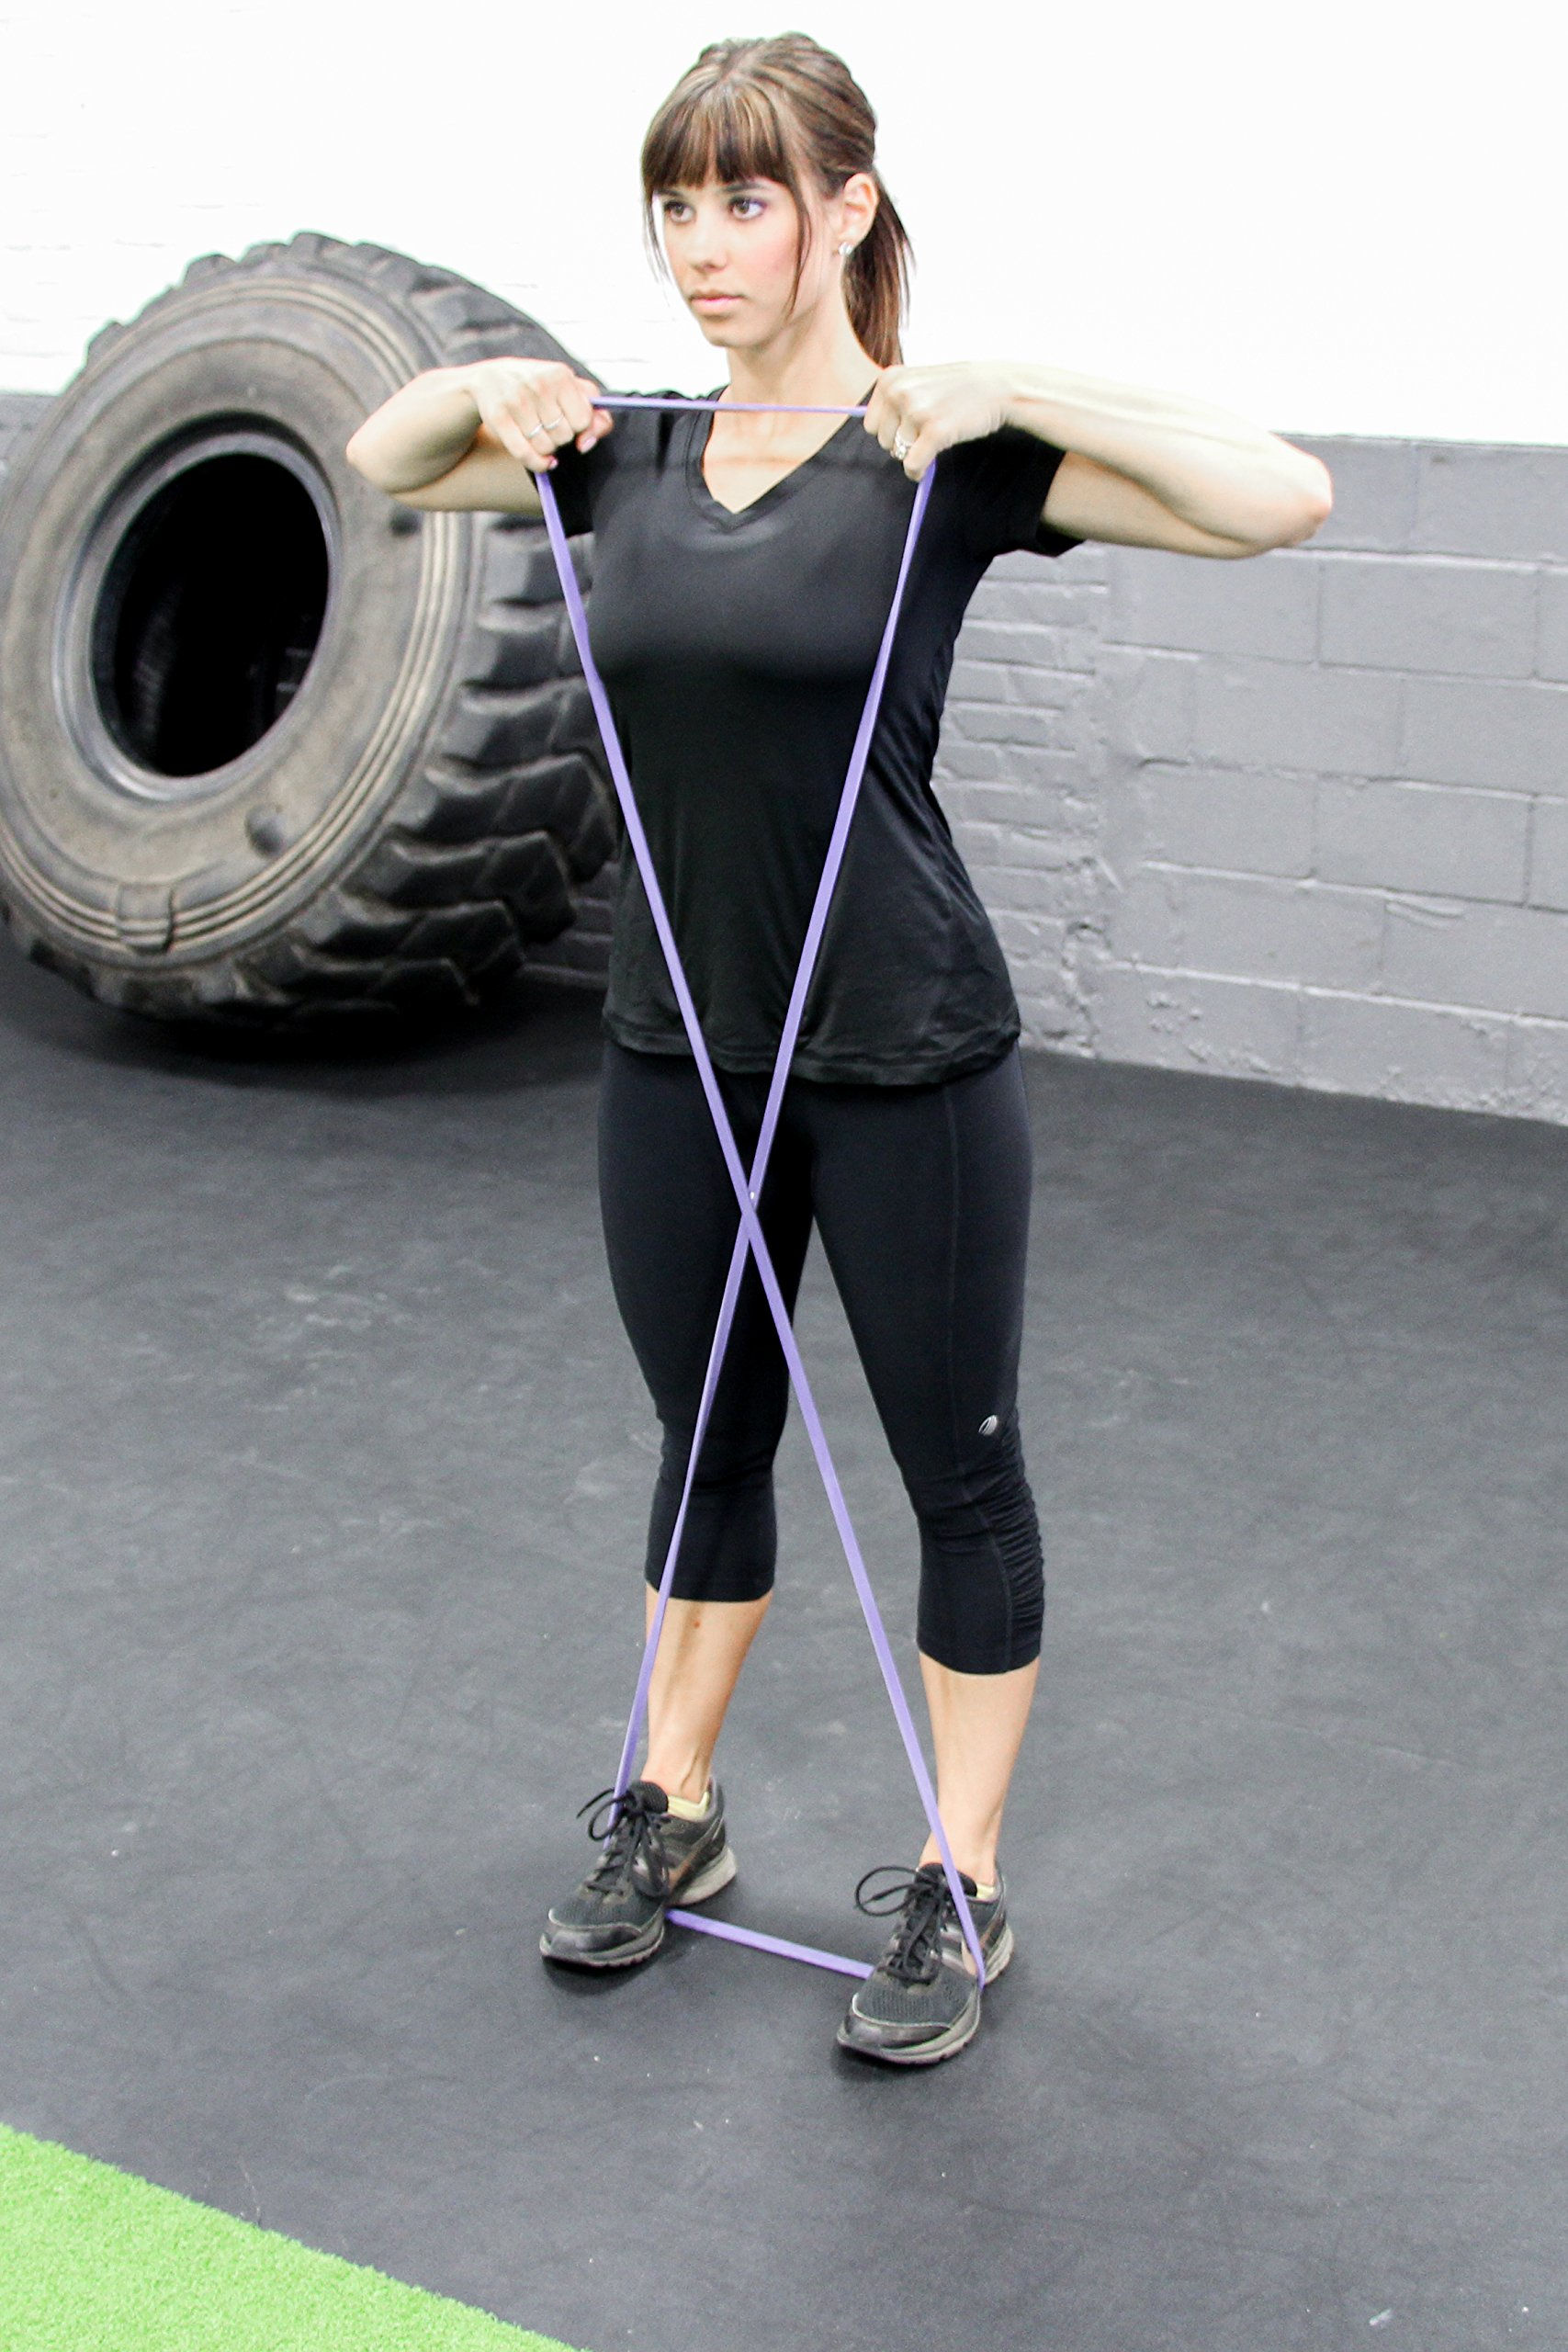 """Purple - #1 Pull-Up Band   Assisted Pull-up Loop Band   Resistance & Stretch Band Size: 1/2"""" x 4.5mm Resistance: 5-35lbs by Serious Steel Fitness (Image #9)"""